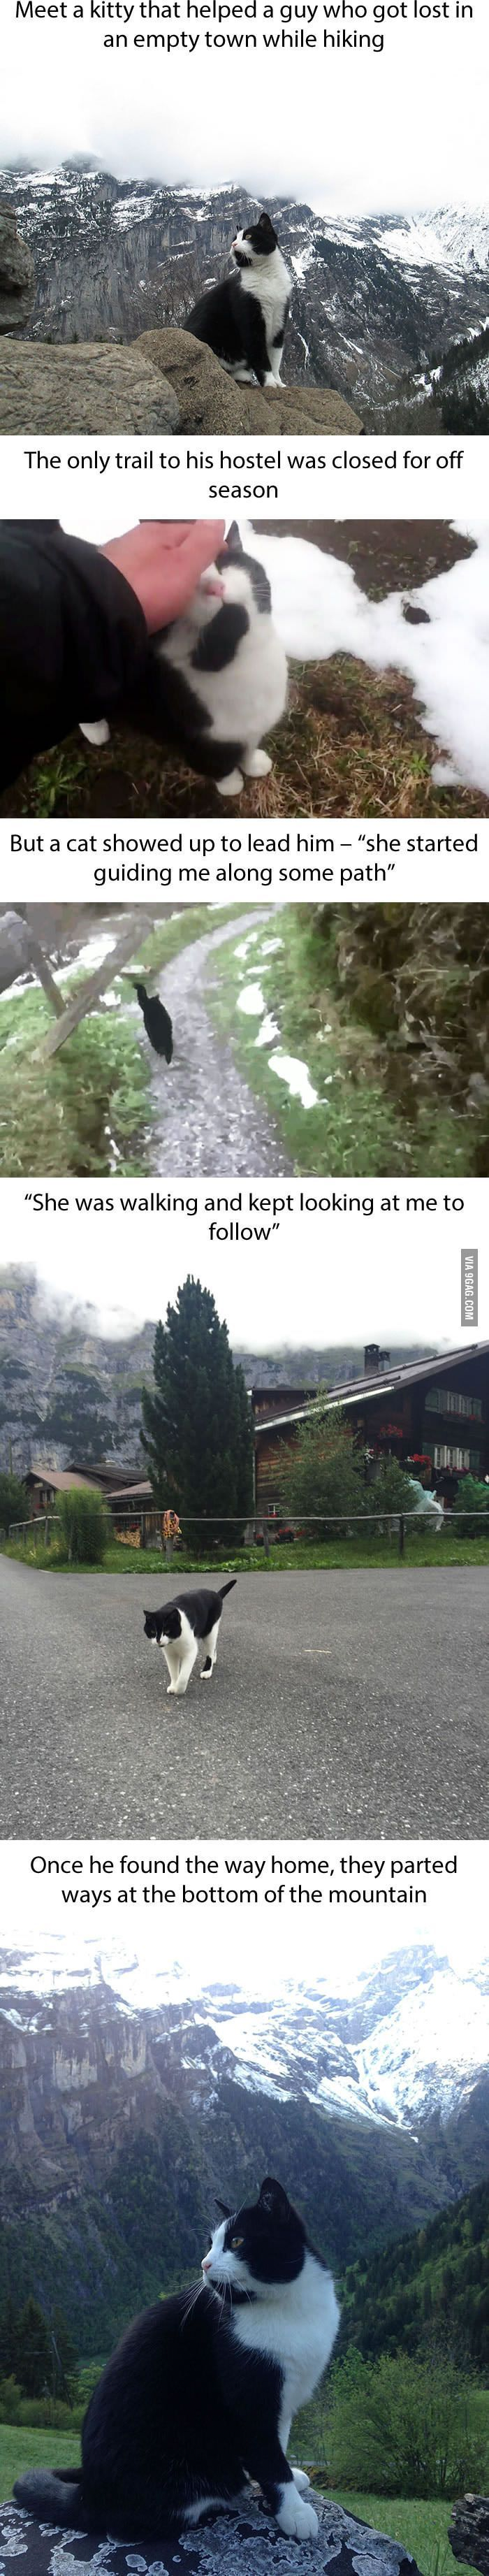 Heroic kitty! Man lost in mountains of Switzerland comes across a kitty who guides him to the nearby town. http://www.traveling-cats.com/2016/08/cat-from-gimmelwald-switzerland.html /